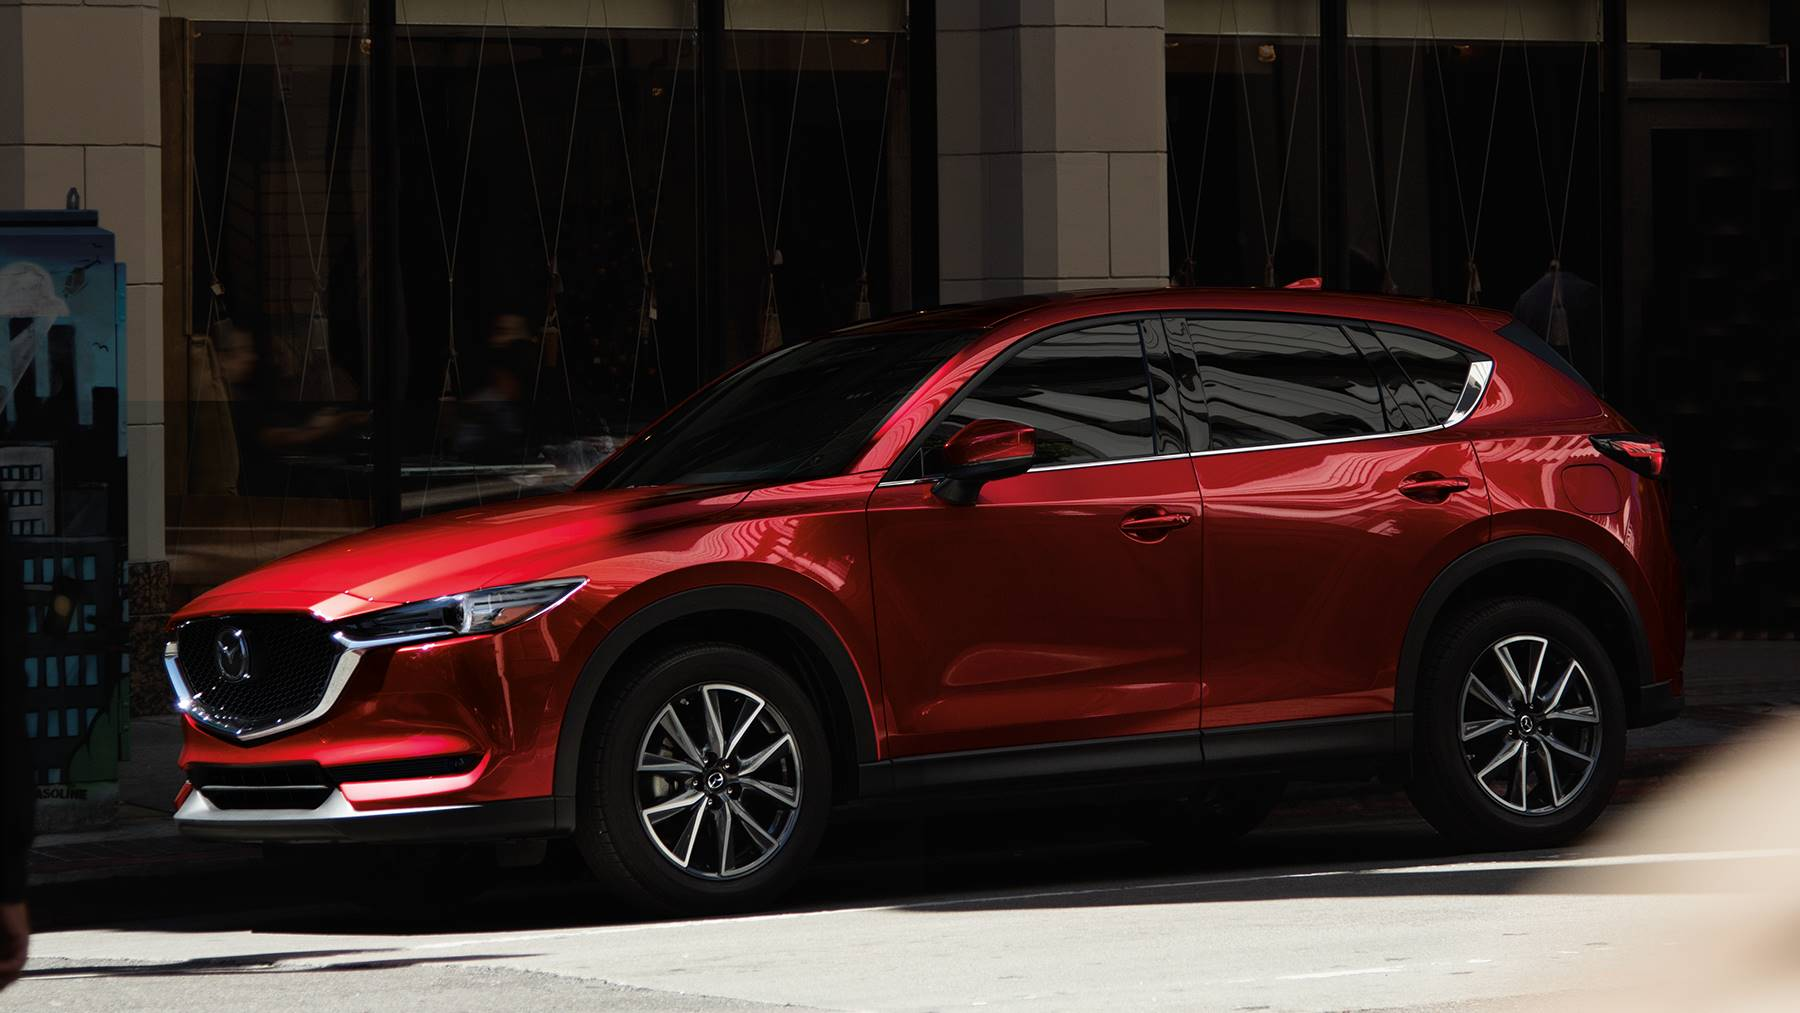 2018 Mazda CX-5 Red Front Exterior